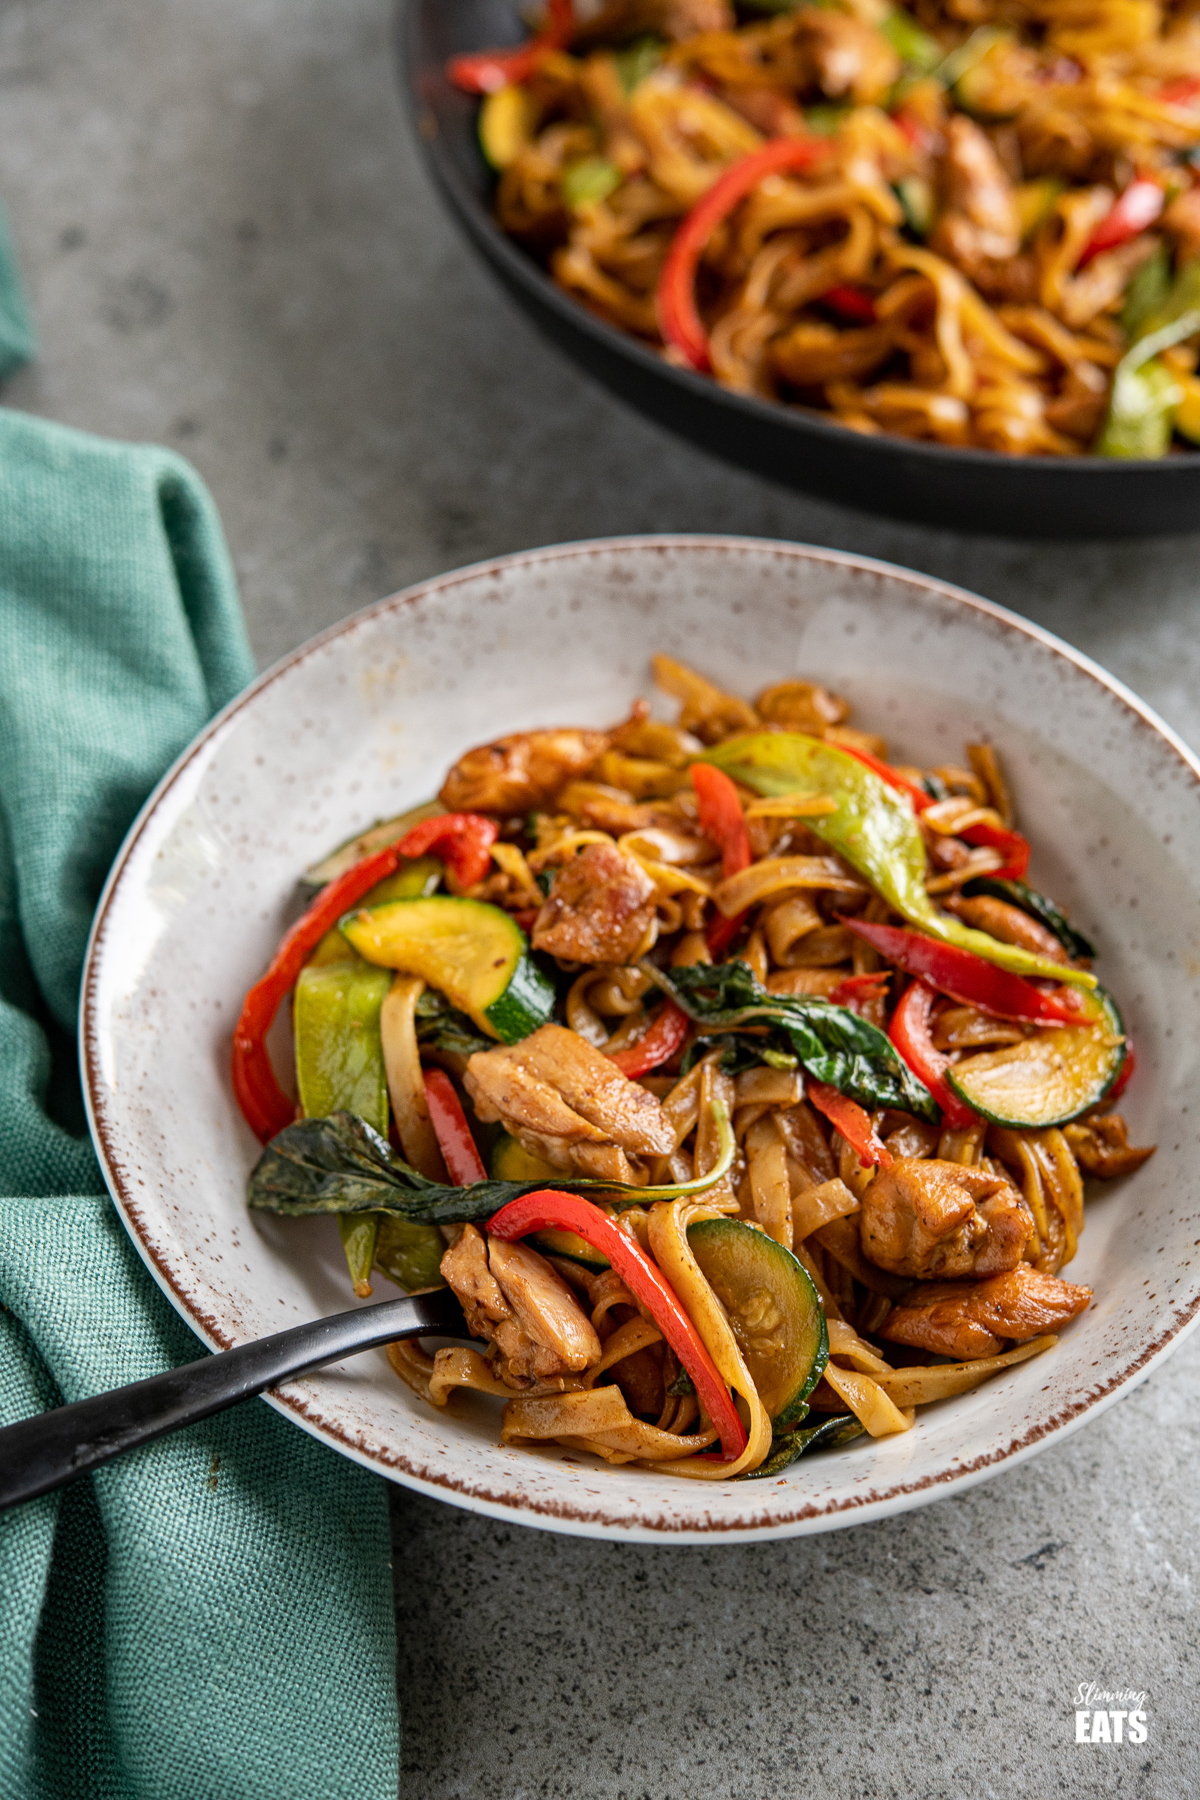 drunken noodles - chicken, vegetables and rice noodles in a spicy flavoursome sauce in a grey, brown and white bowl